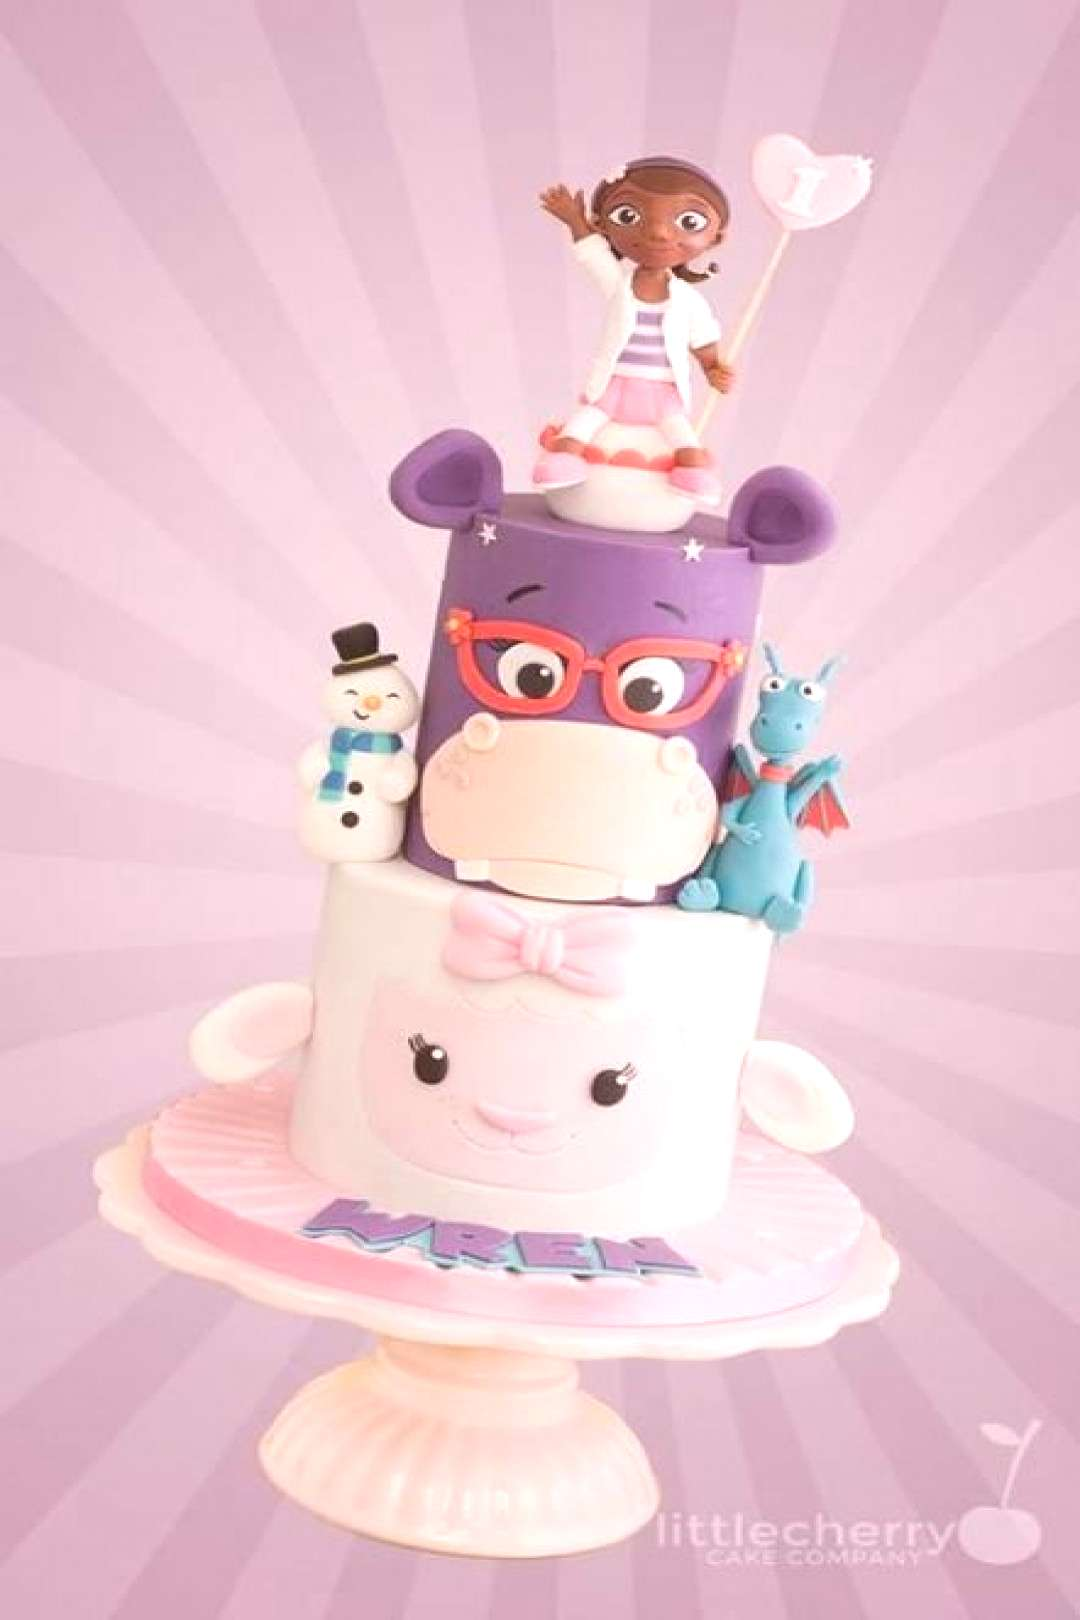 49+ Ideas cake fondant girl doc mcstuffins for 2019 49+ Ideas cake fondant girl doc mcstuffins for